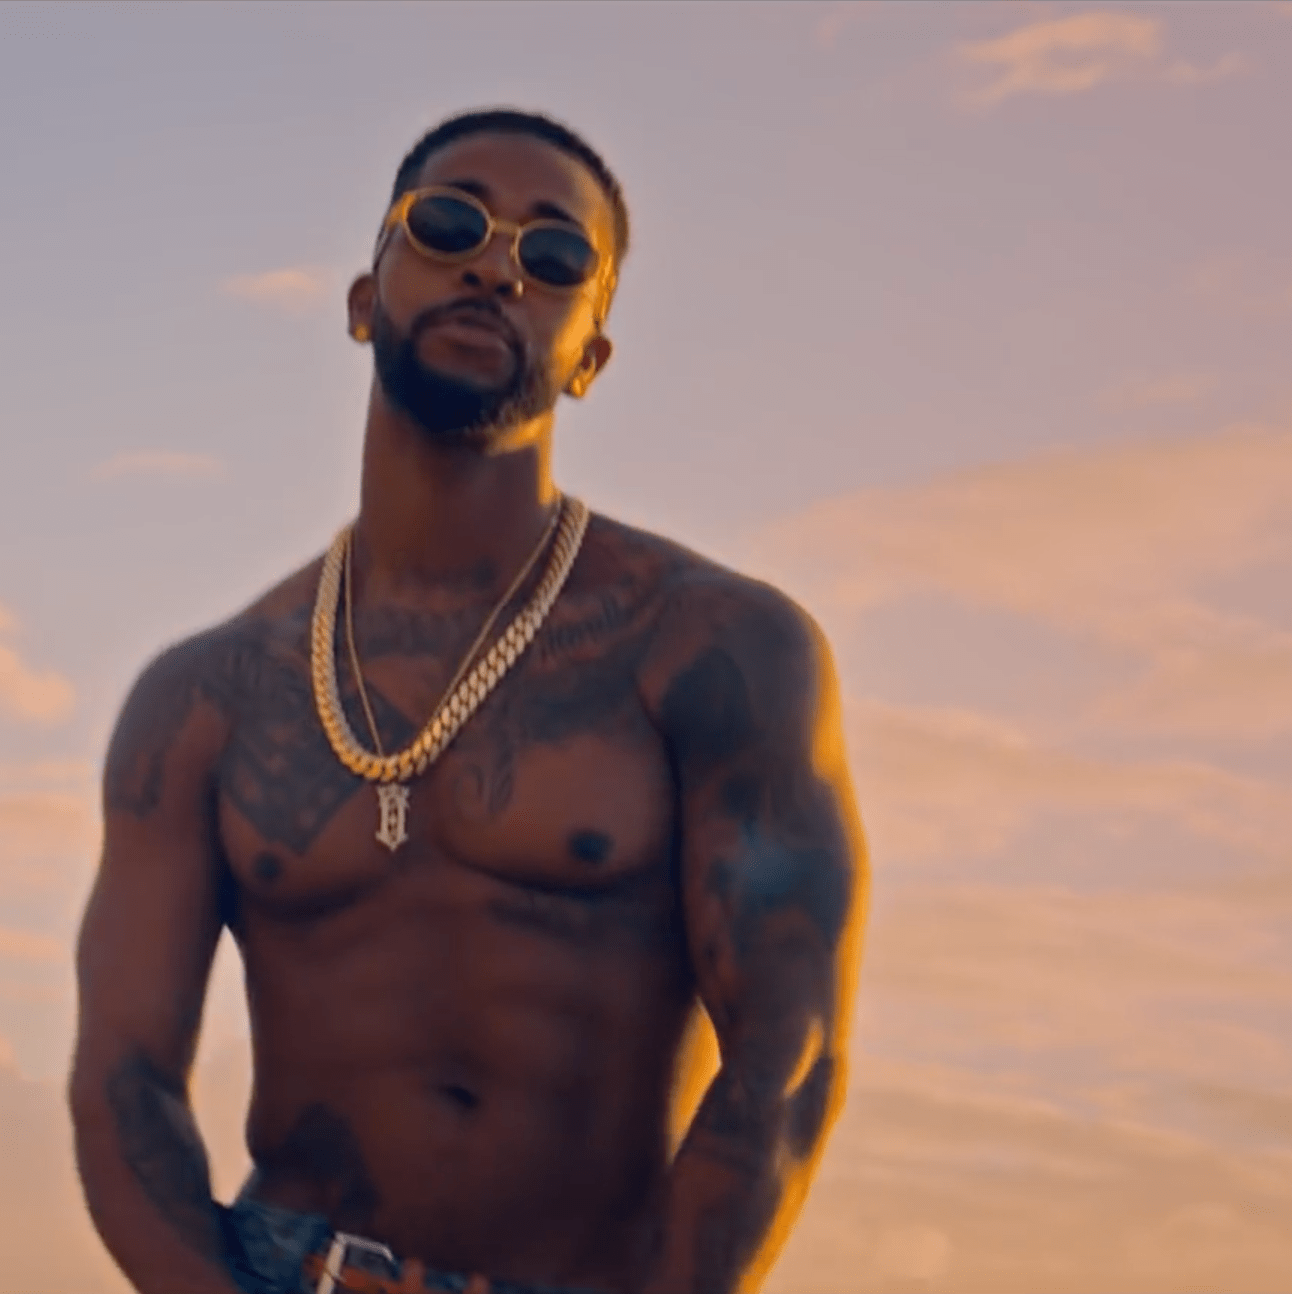 Track Review: Omarion, 'BDY ON ME'